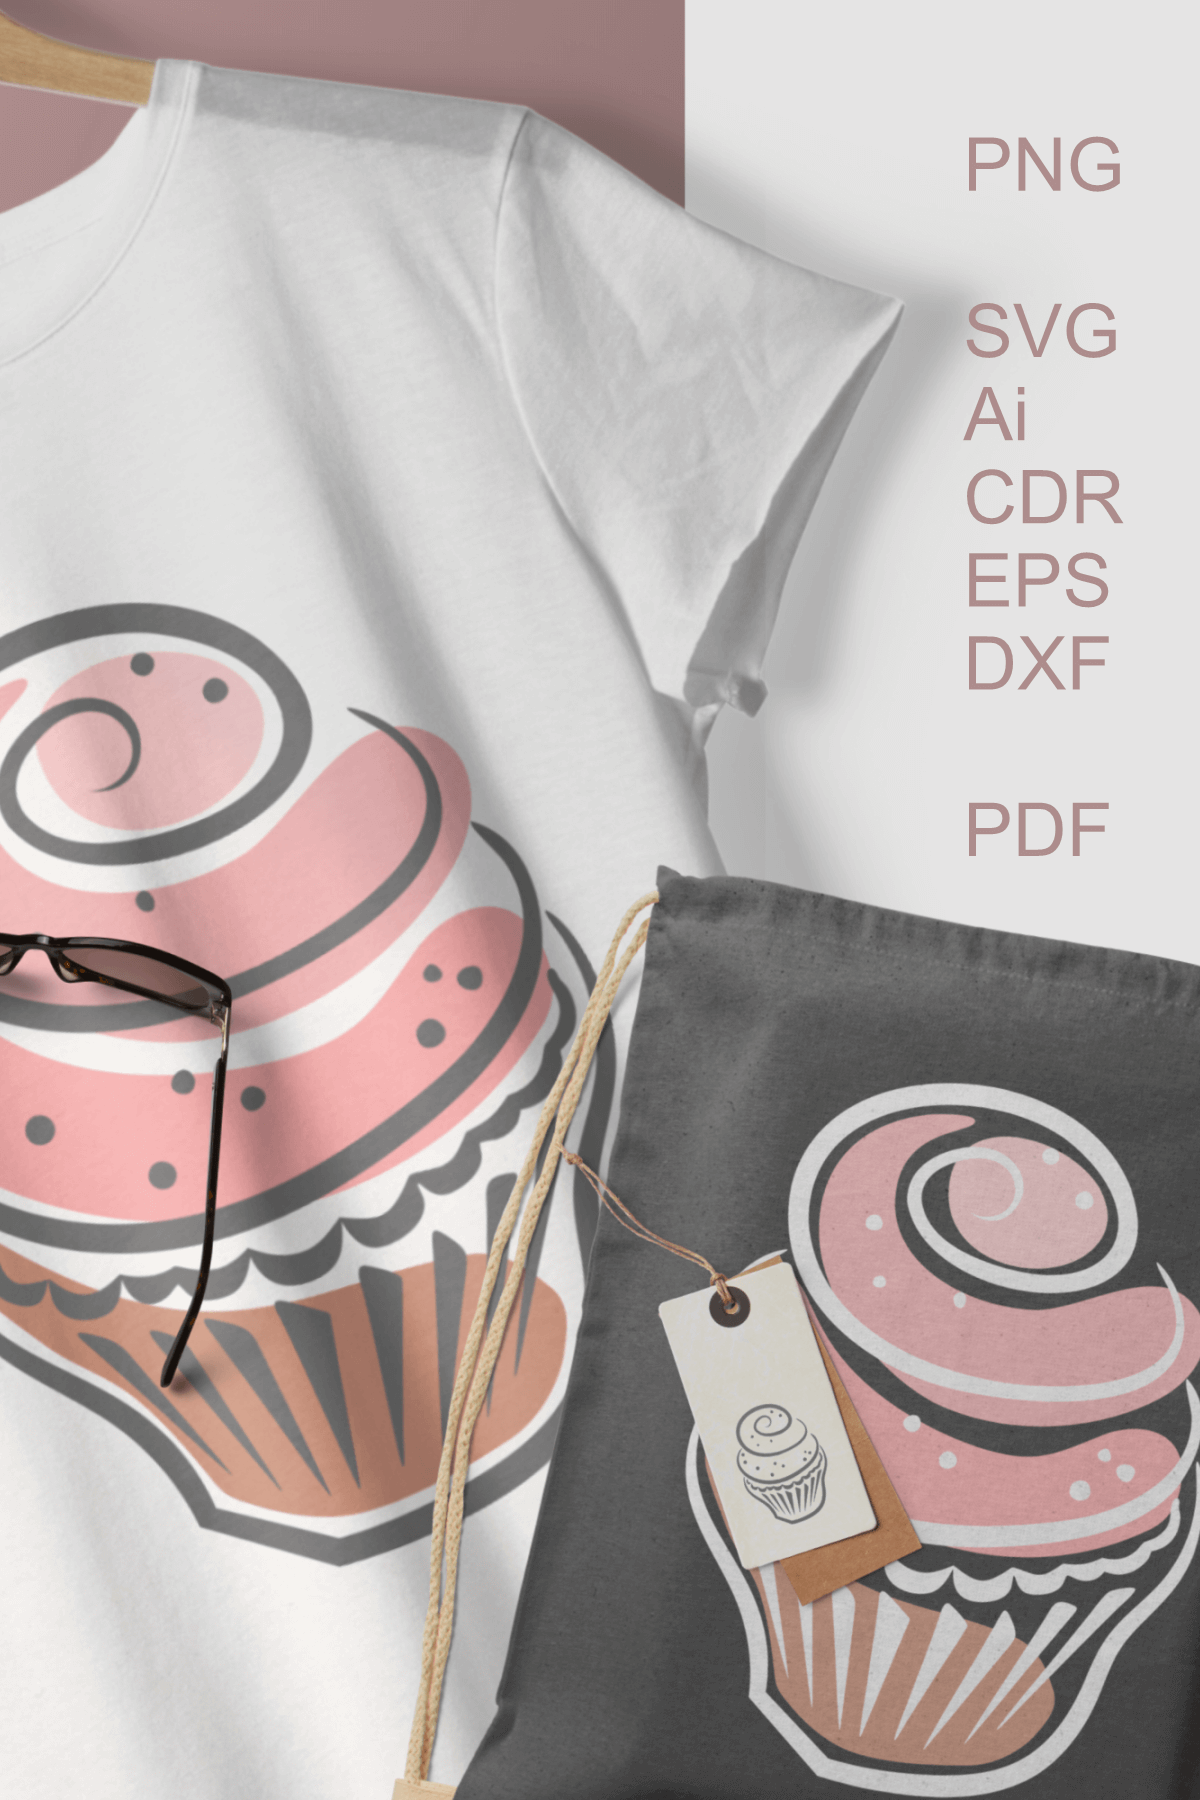 Cupcakes Clipart SVG PDF AI DXF for Crafts and Stationery example image 5